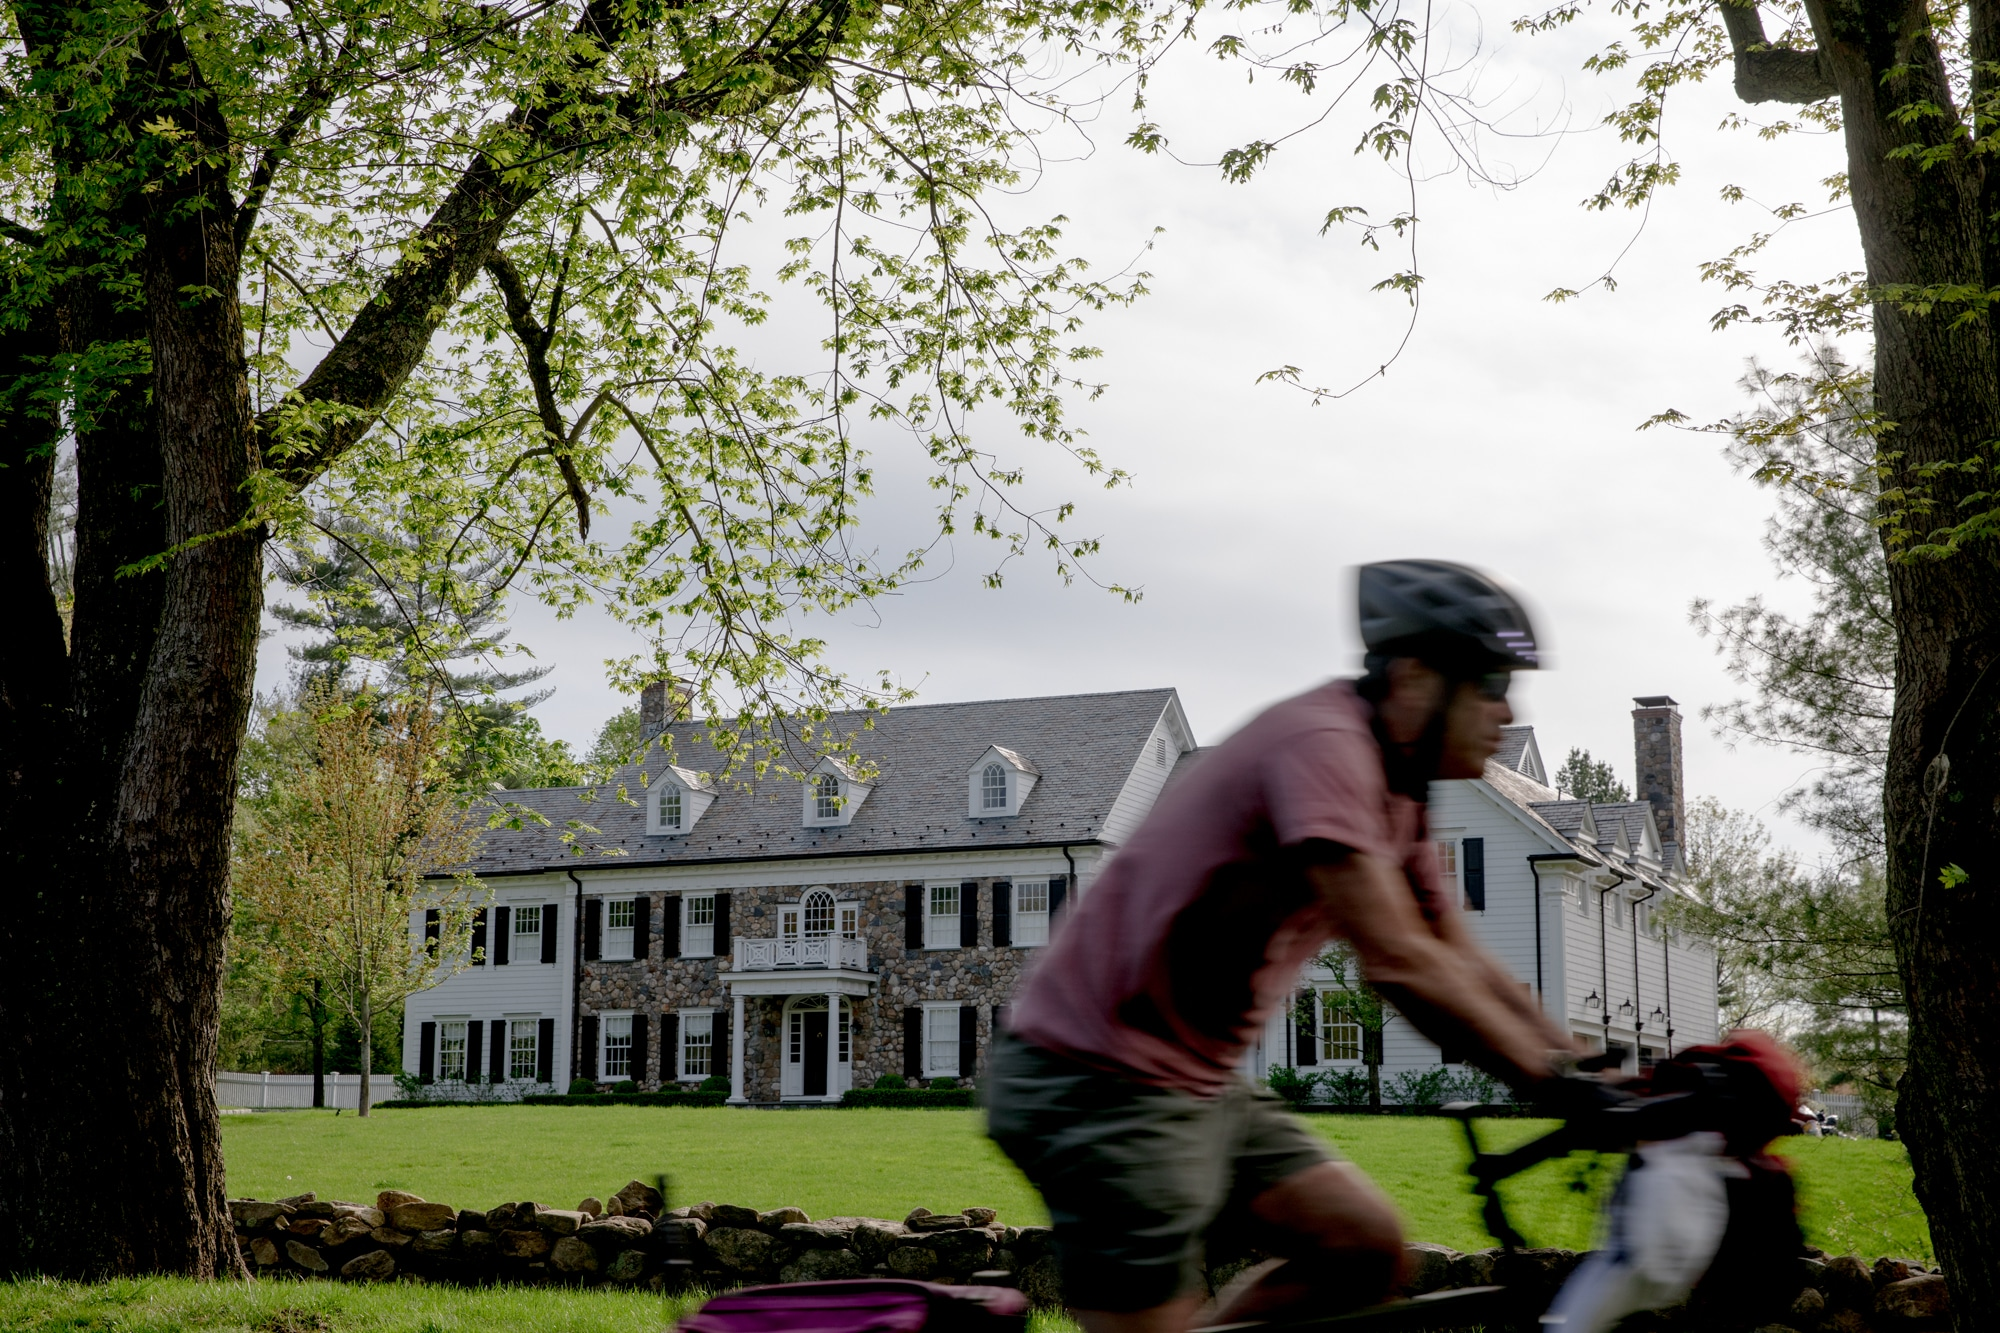 How one bike ride inspired a case that could upend CT's zoning laws